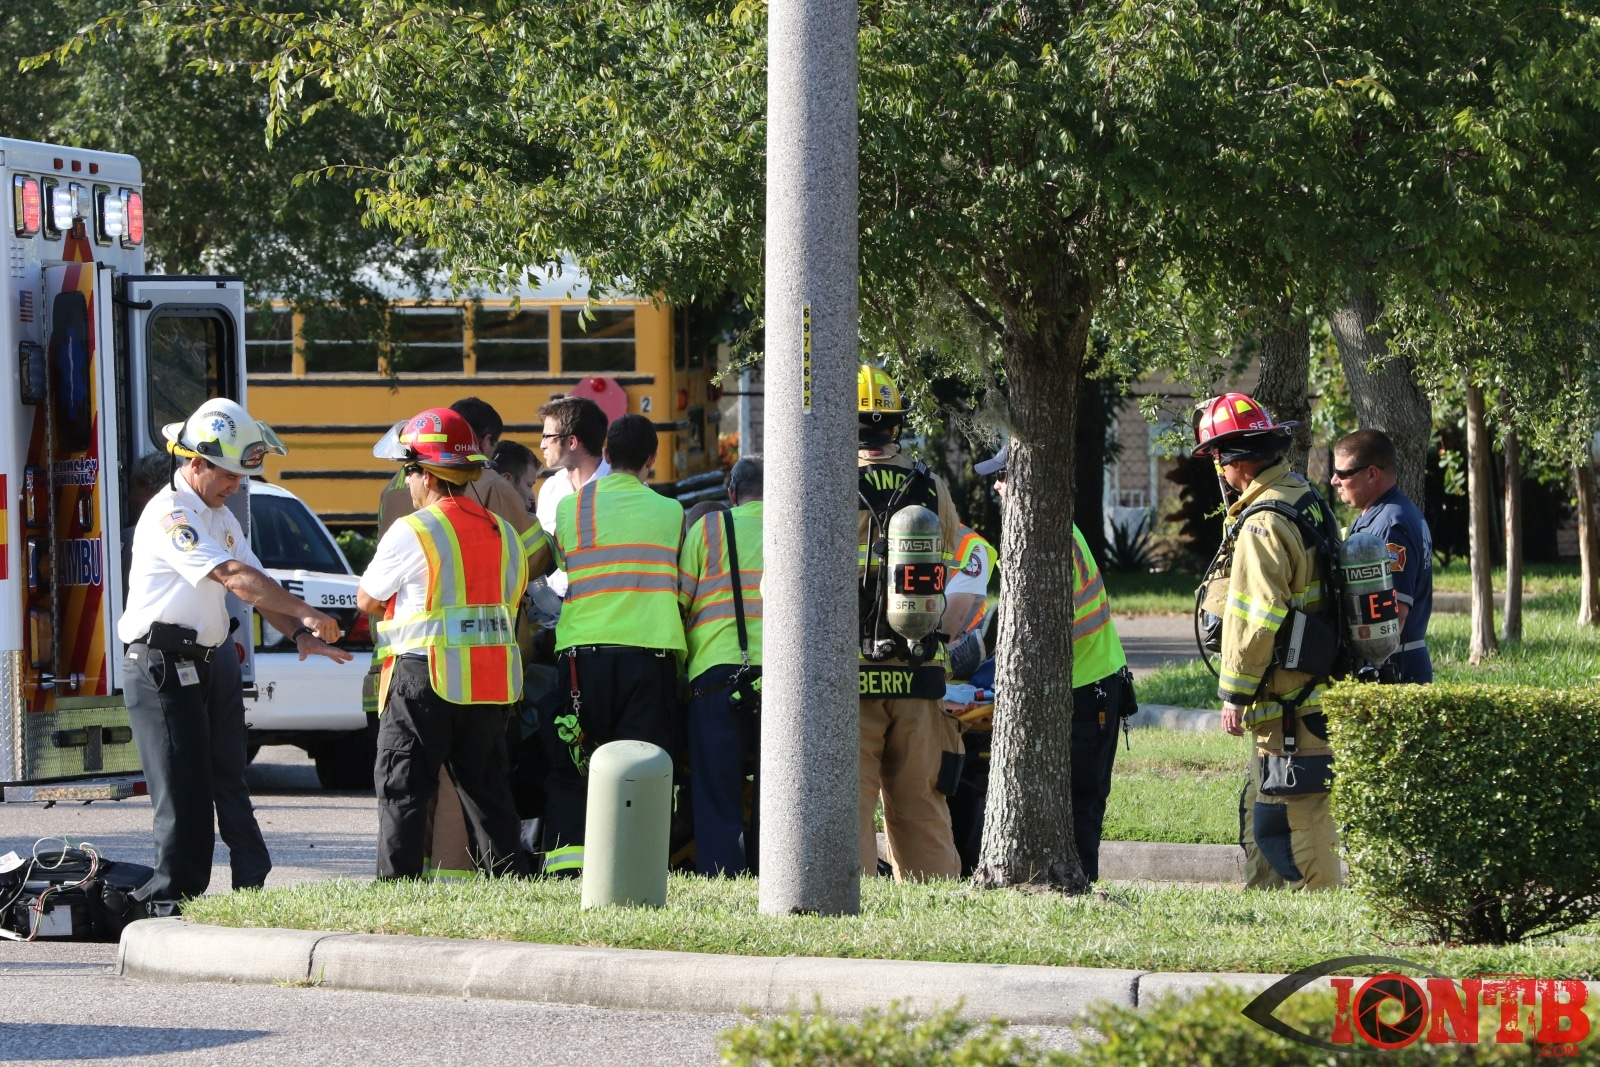 Motorcyclist Dead and Passenger Injured In Largo Crash - IONTB